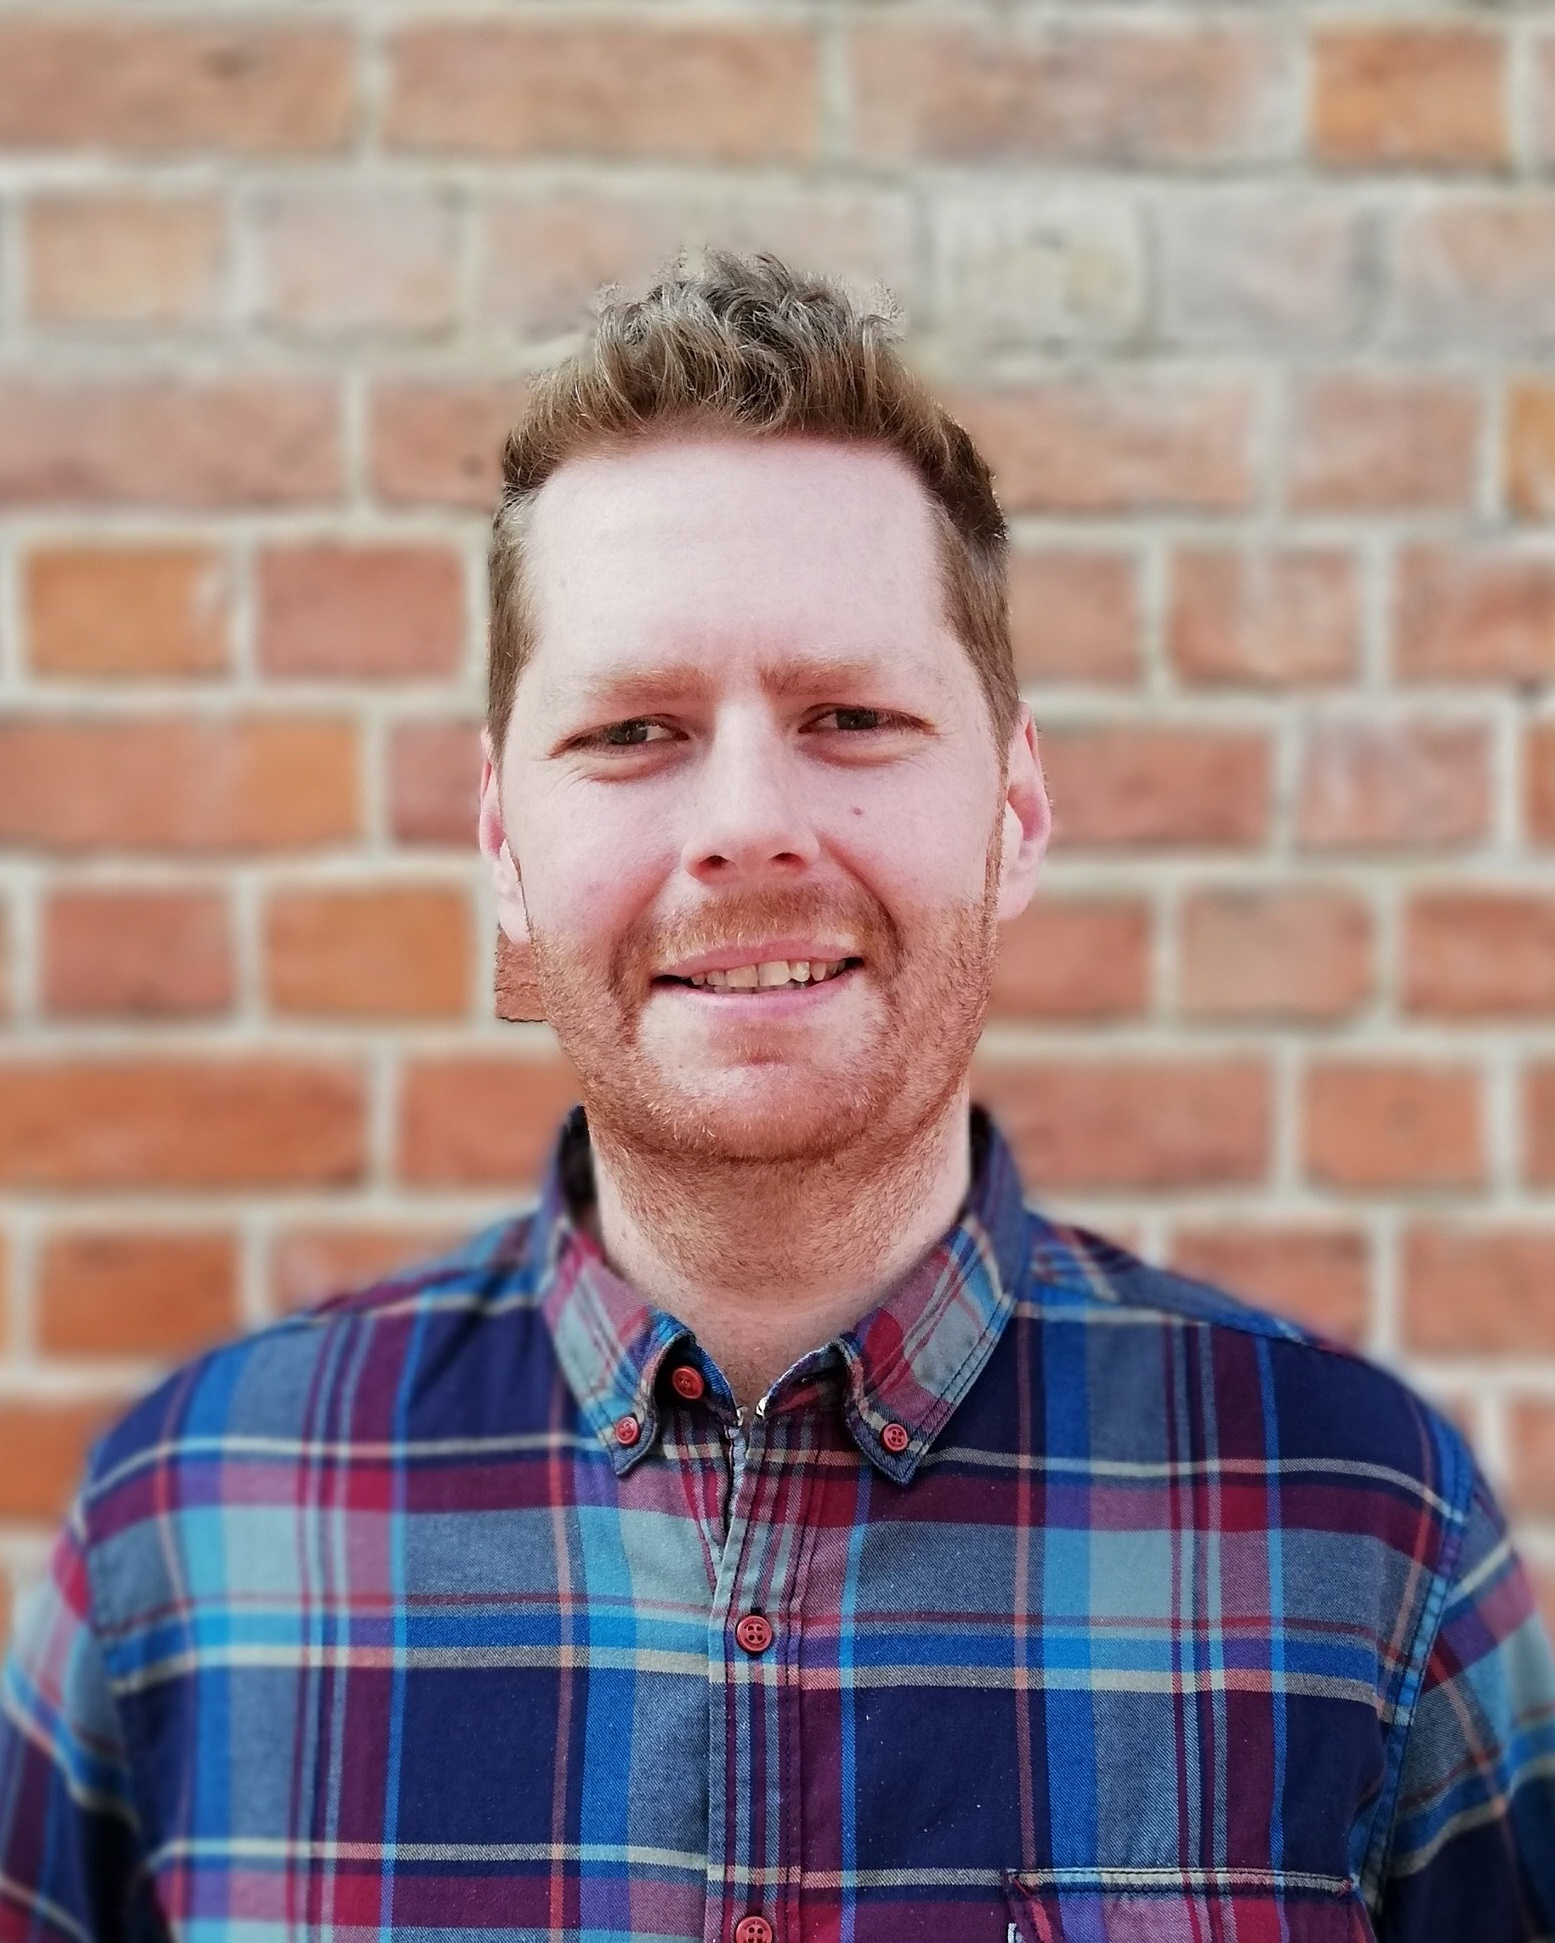 Seb - Seb is our Assistant Minister and part of the Mariners family along with his wife Isla and their three daughters. Seb has been an invaluable addition to the team, bringing anointed teaching and a passion to see many of our ministries develop.